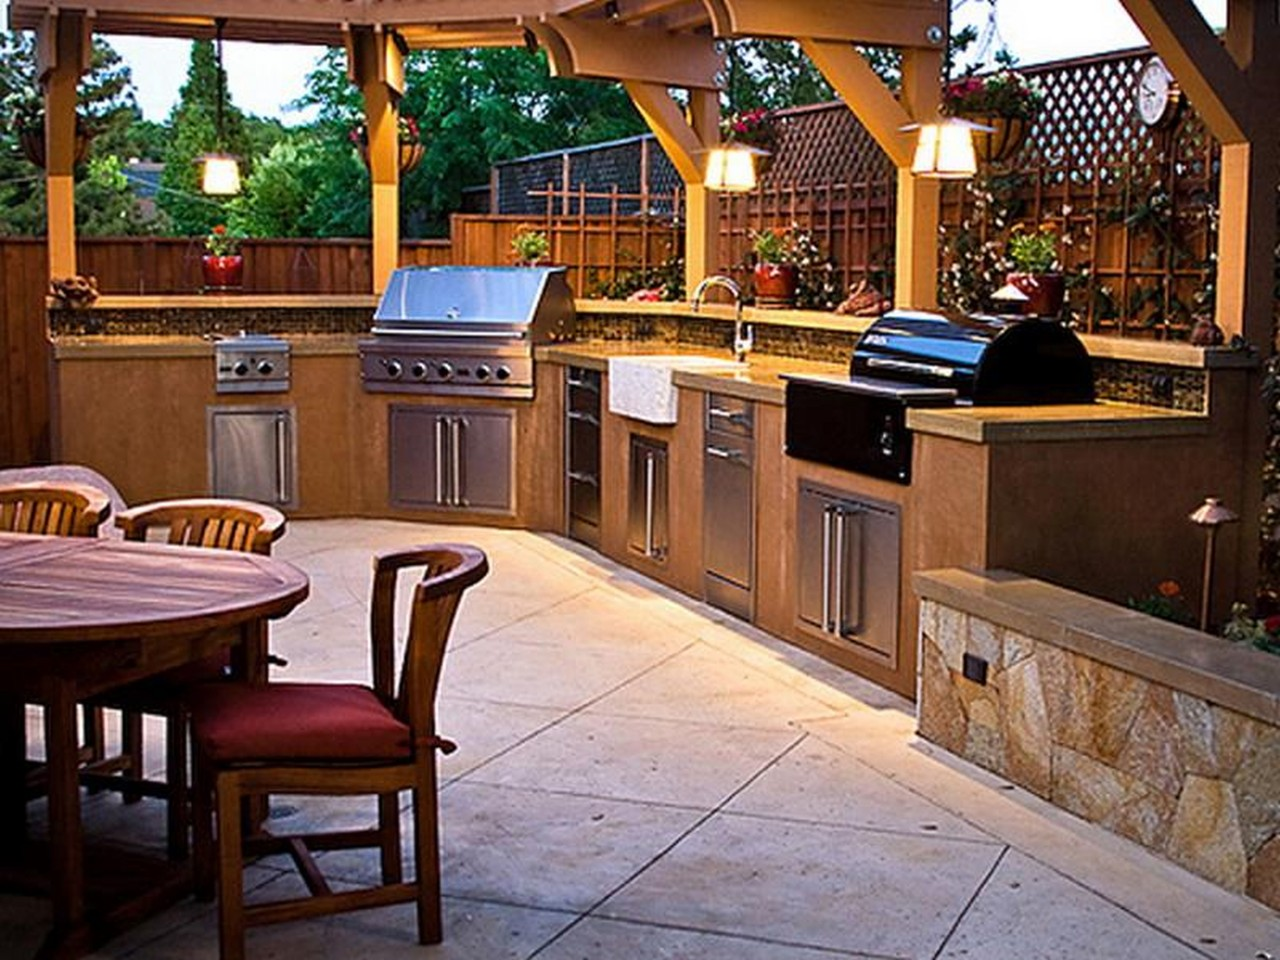 Blueprints-for-Outdoor-Kitchens-By-Design-Cool-Kitchen-Design-Divine-kitchen-island-design-ideas-with-seating-Industrial-Style-1280x960